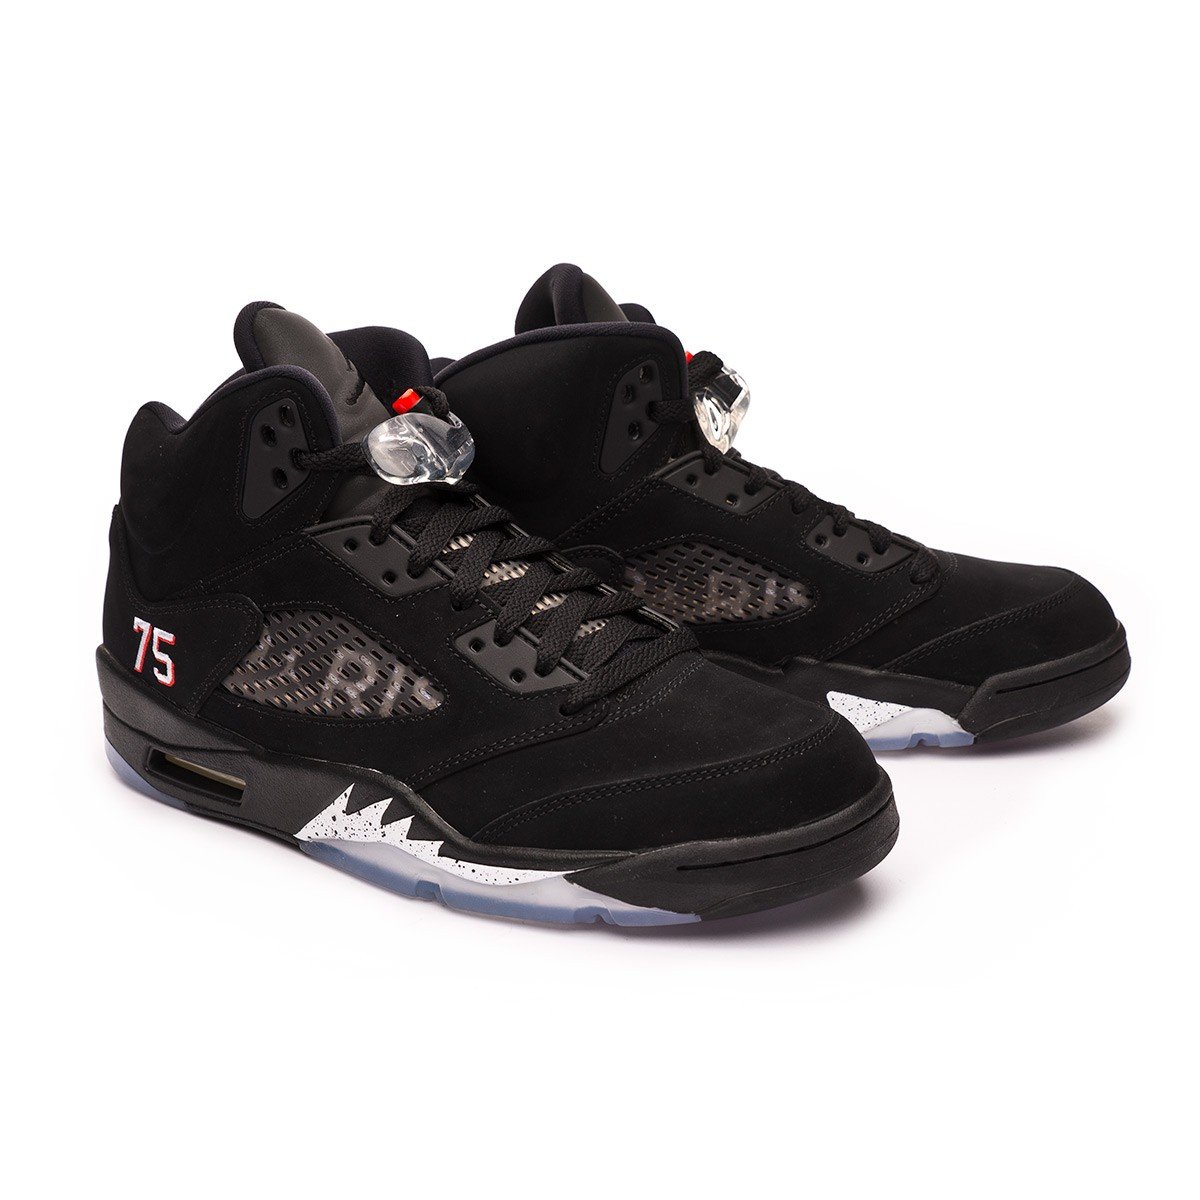 the best attitude e83f8 5b252 Nike Air Jordan 5 Retro Jordan x PSG Trainers